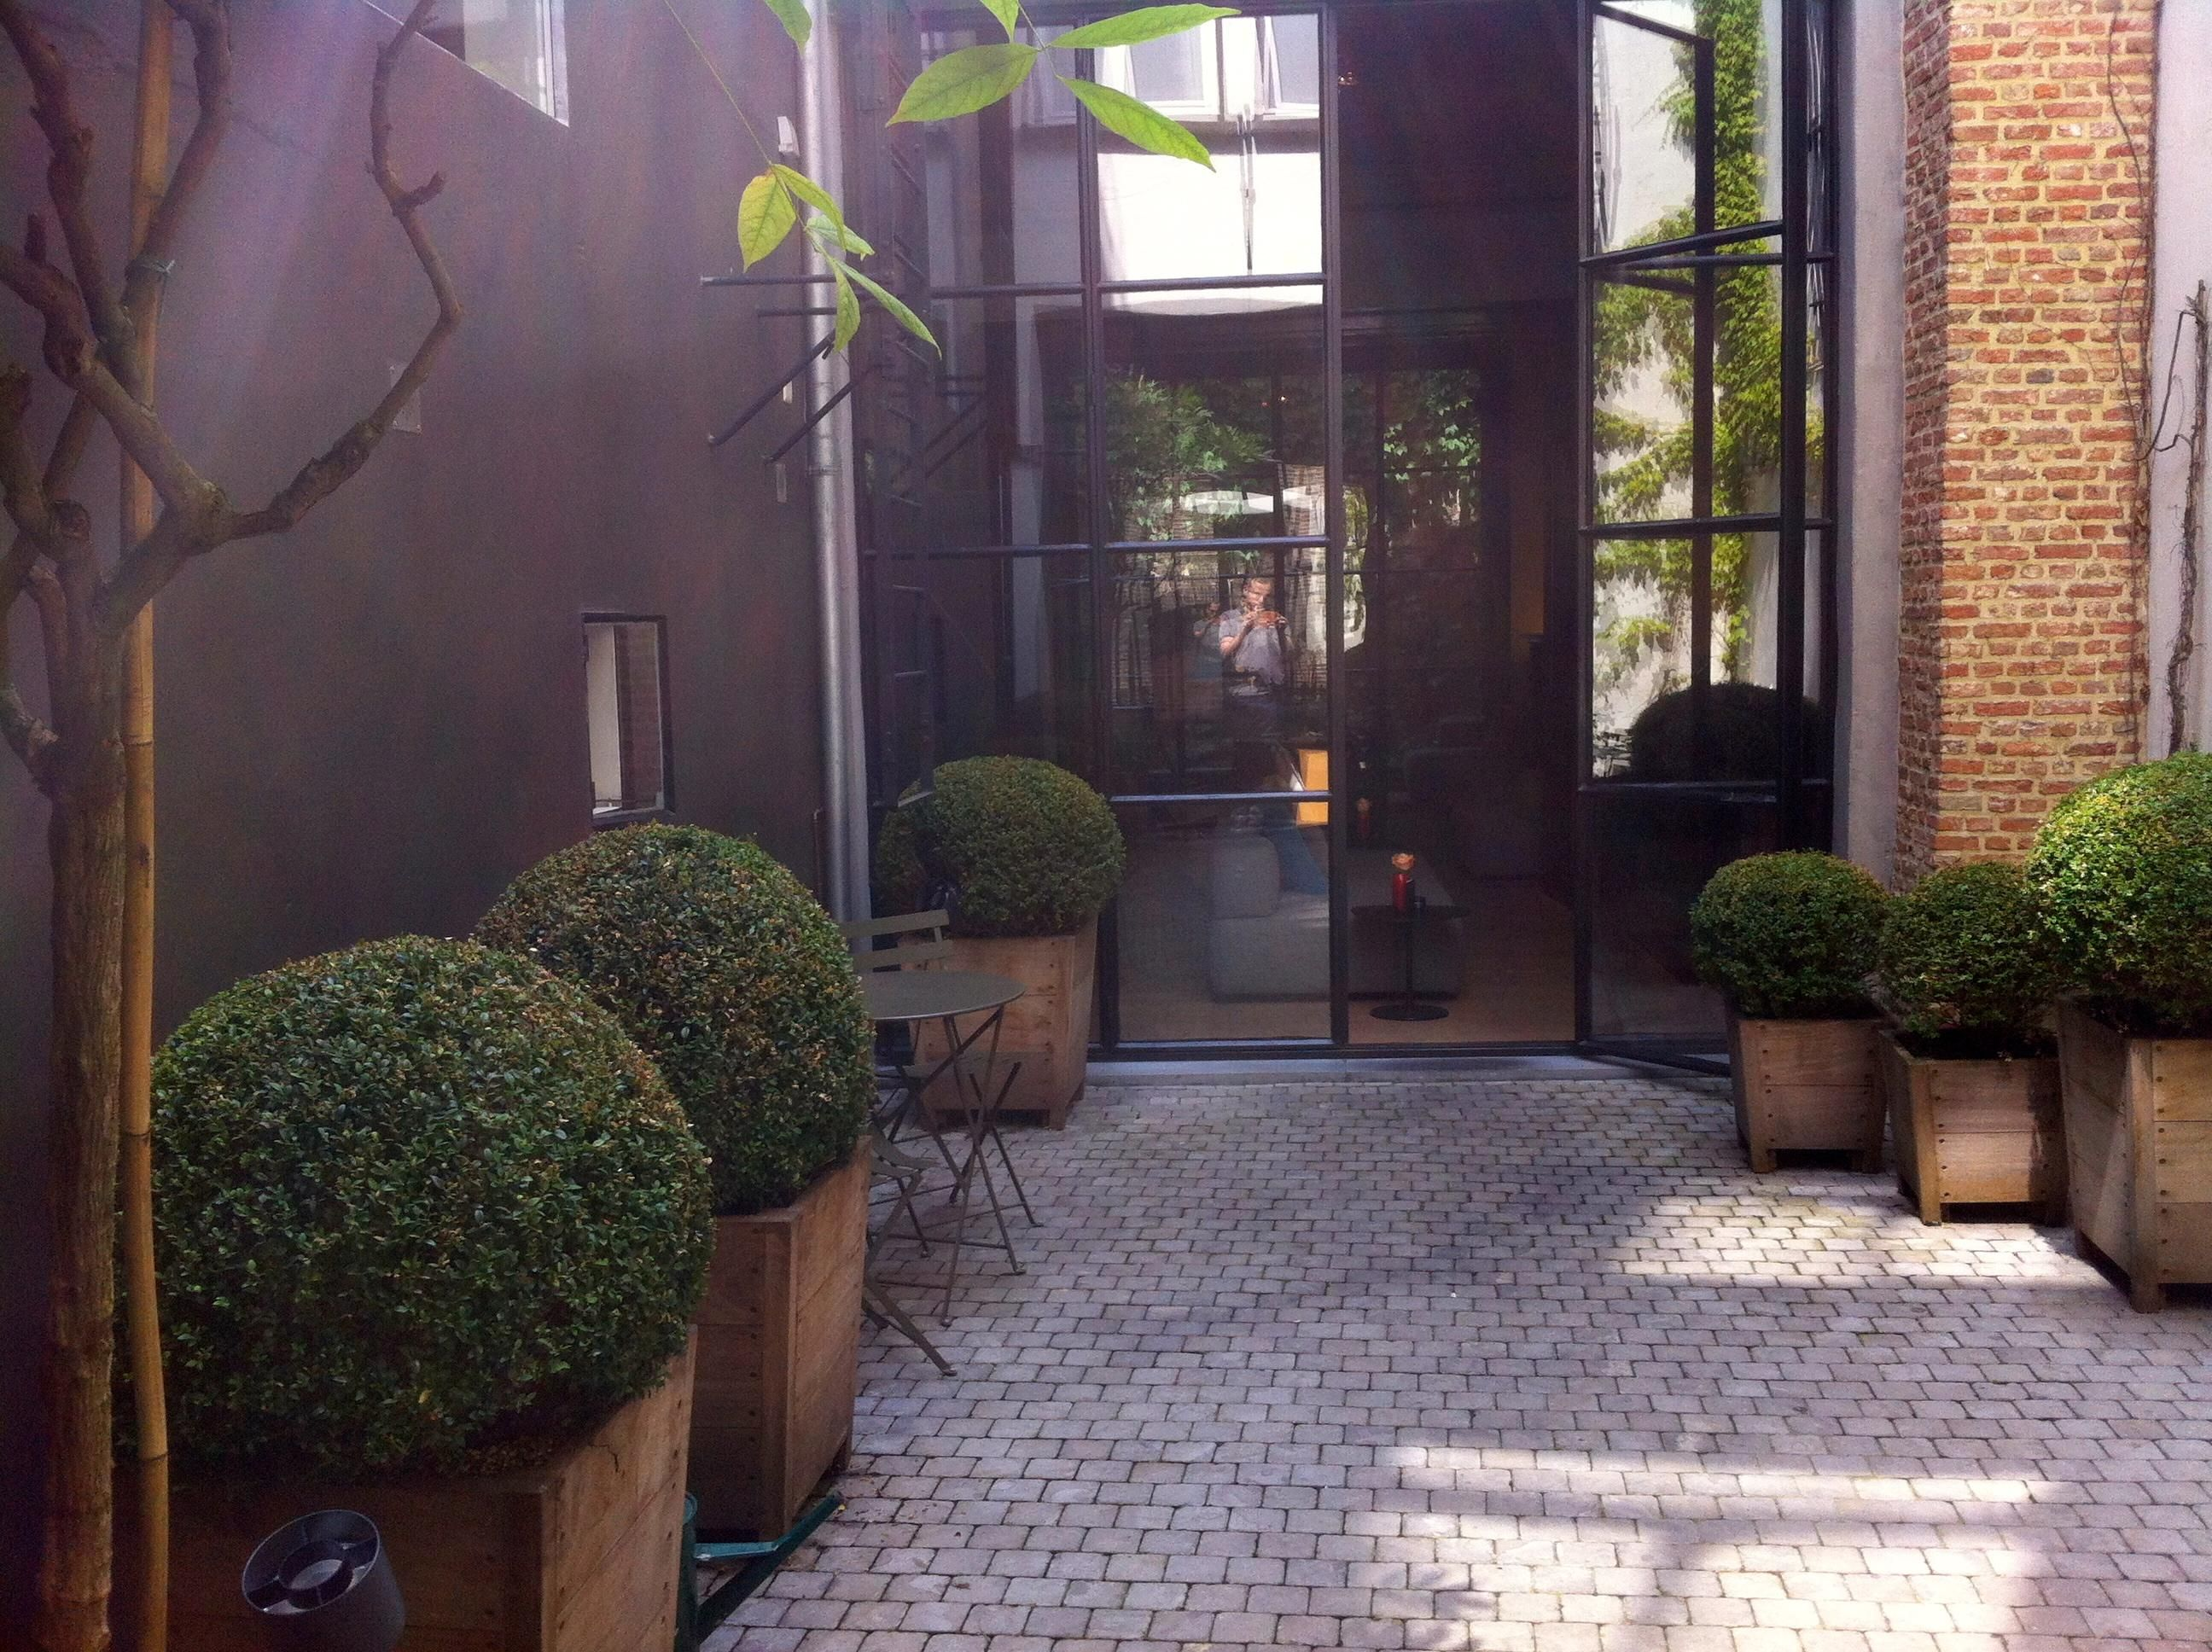 Hotel Julien Modern Backyard Trip Advisor Antwerp